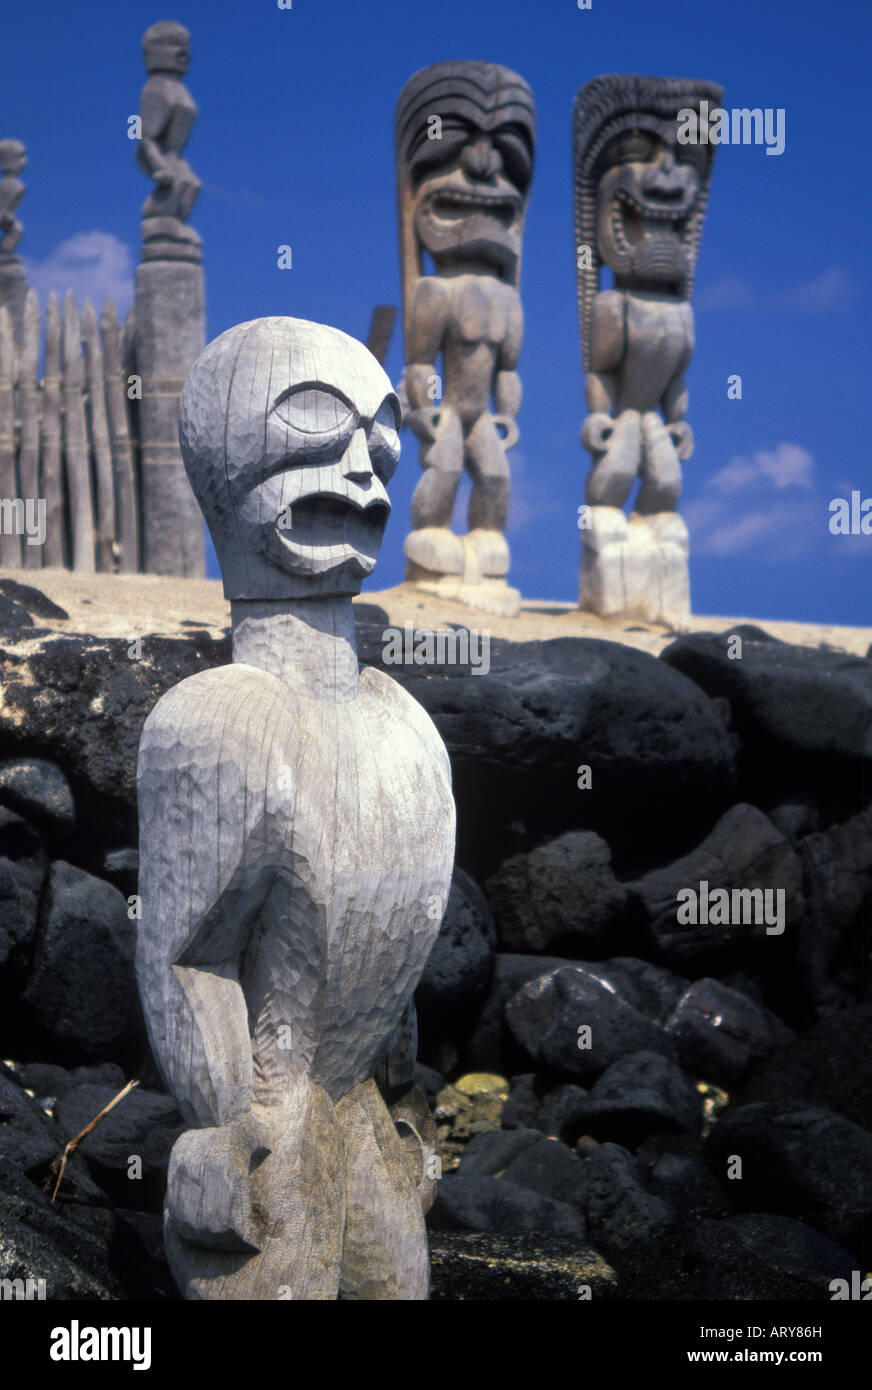 Giant Tikis stand  guard at the Pu'uhonua o Honaunau National Historical Park also know as the City of Refuge. - Stock Image